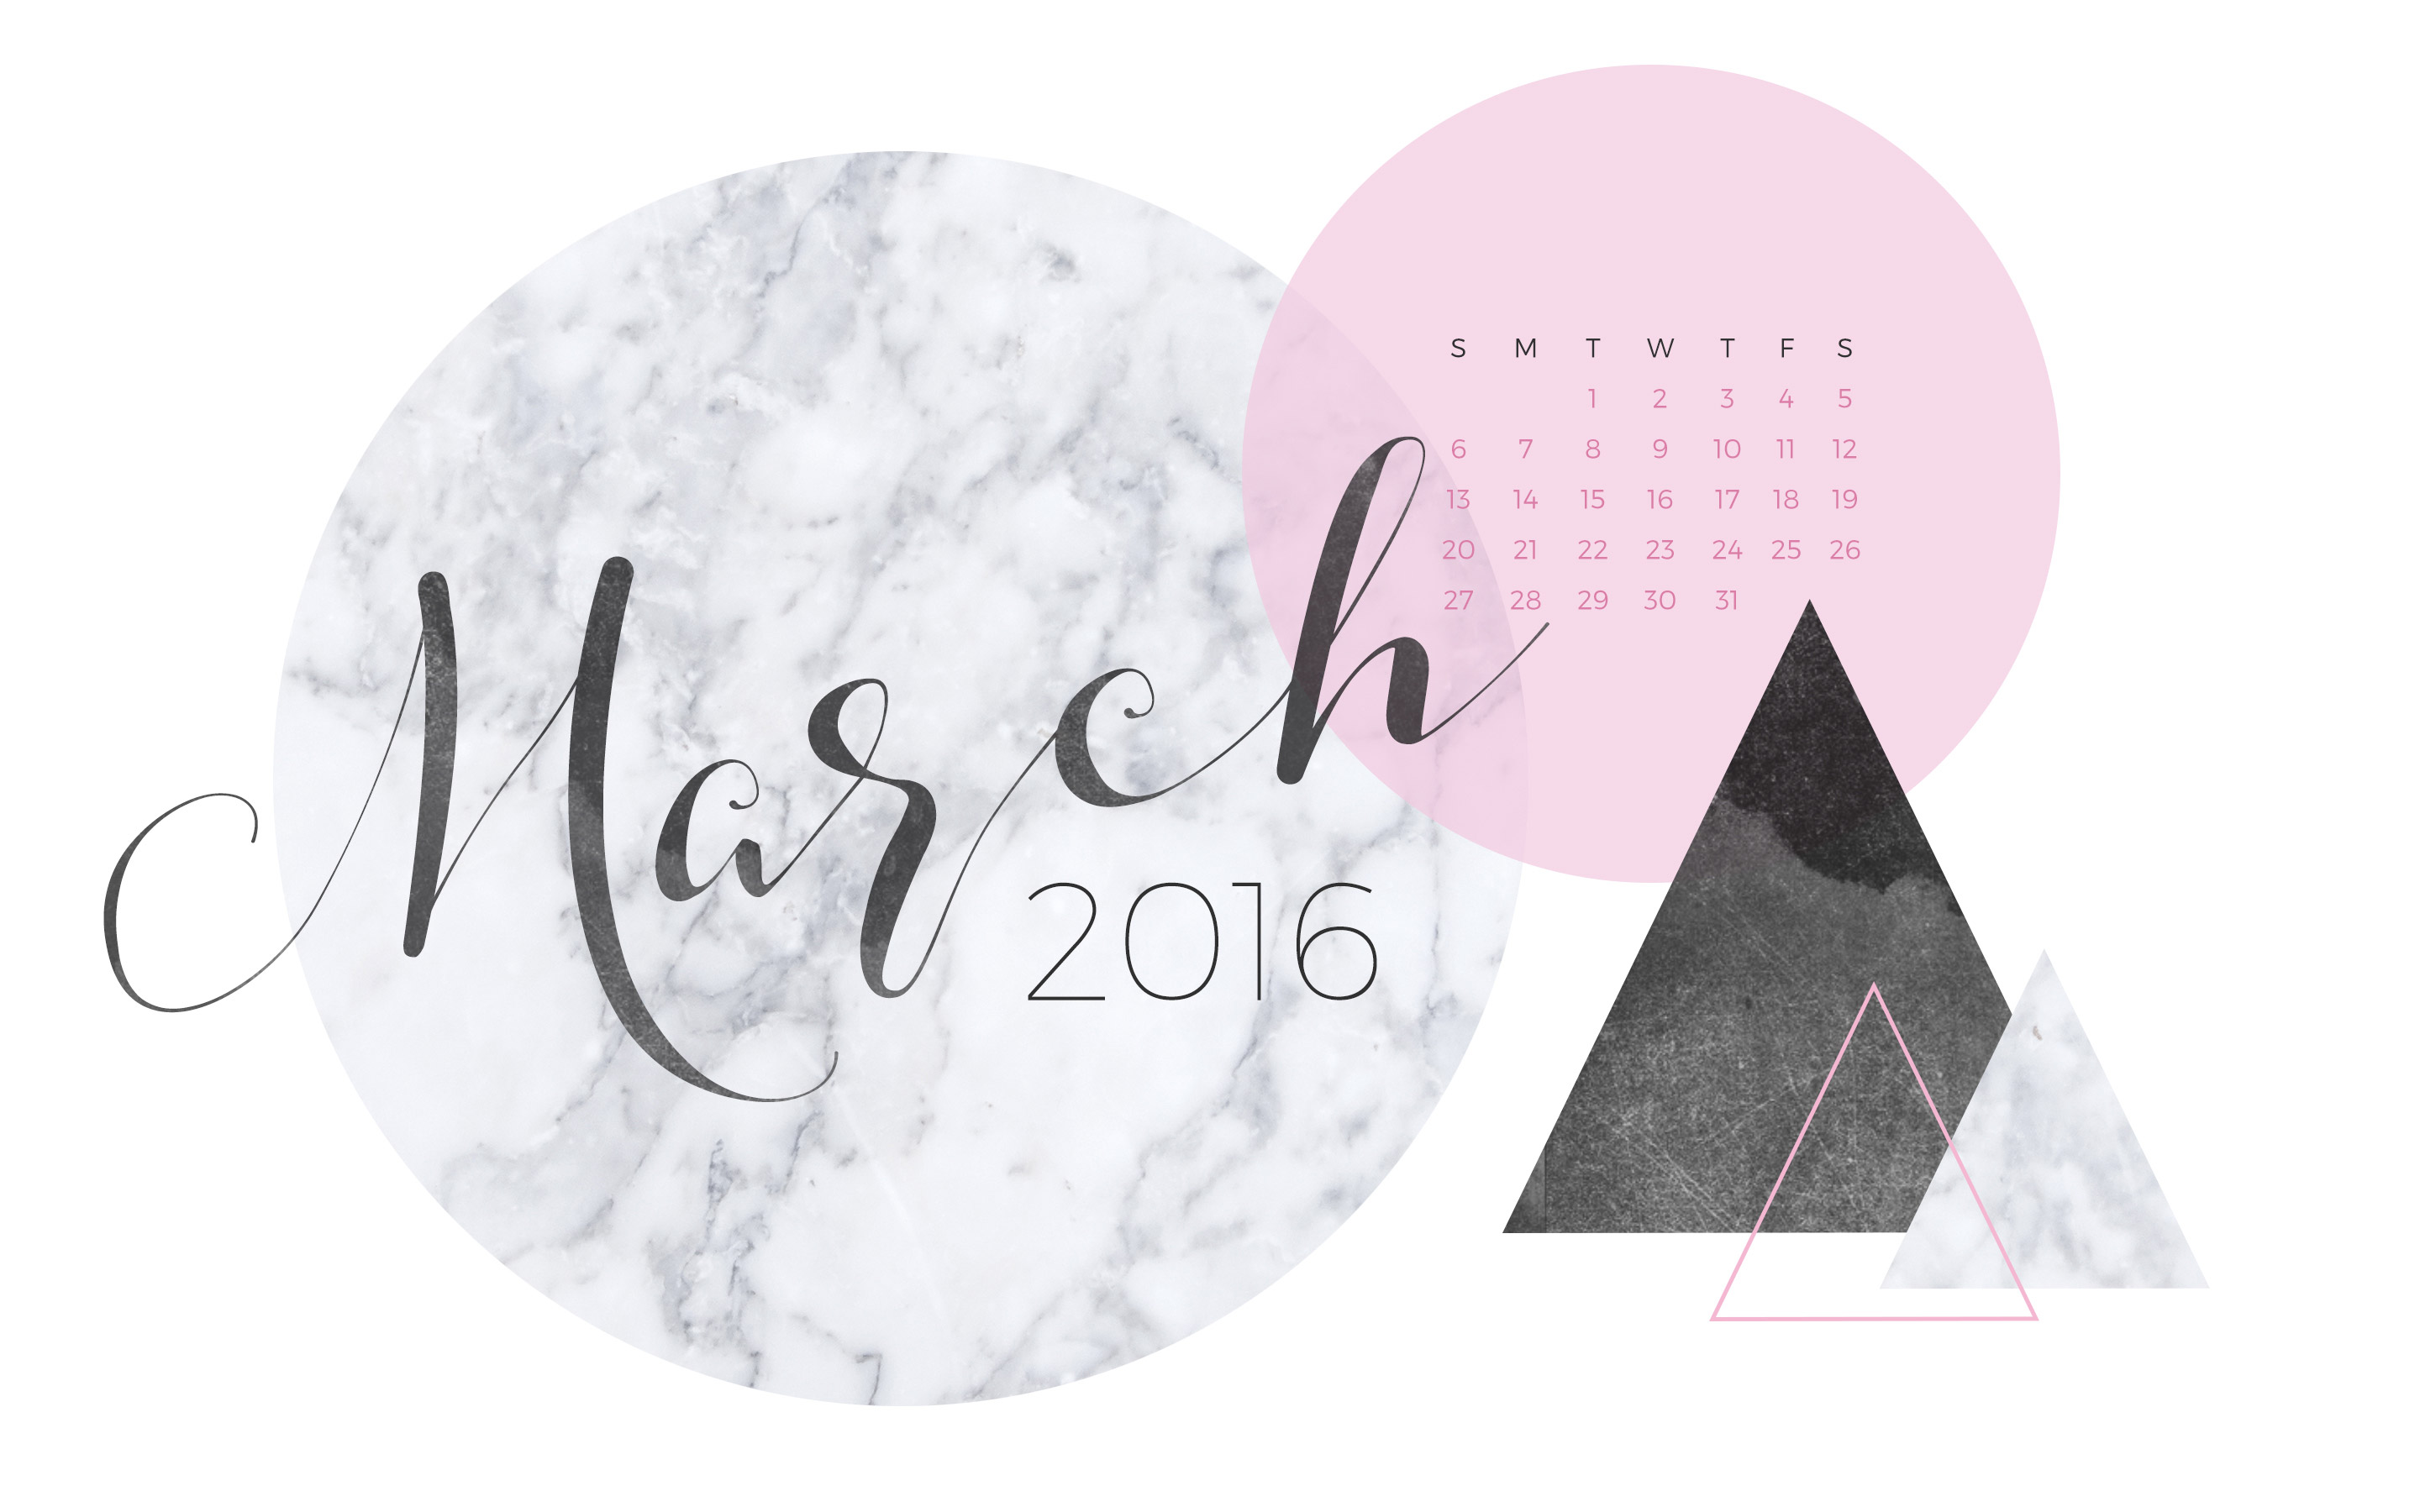 March 2016 Desktop Calendar Wallpaper Paper Leaf 2880x1800